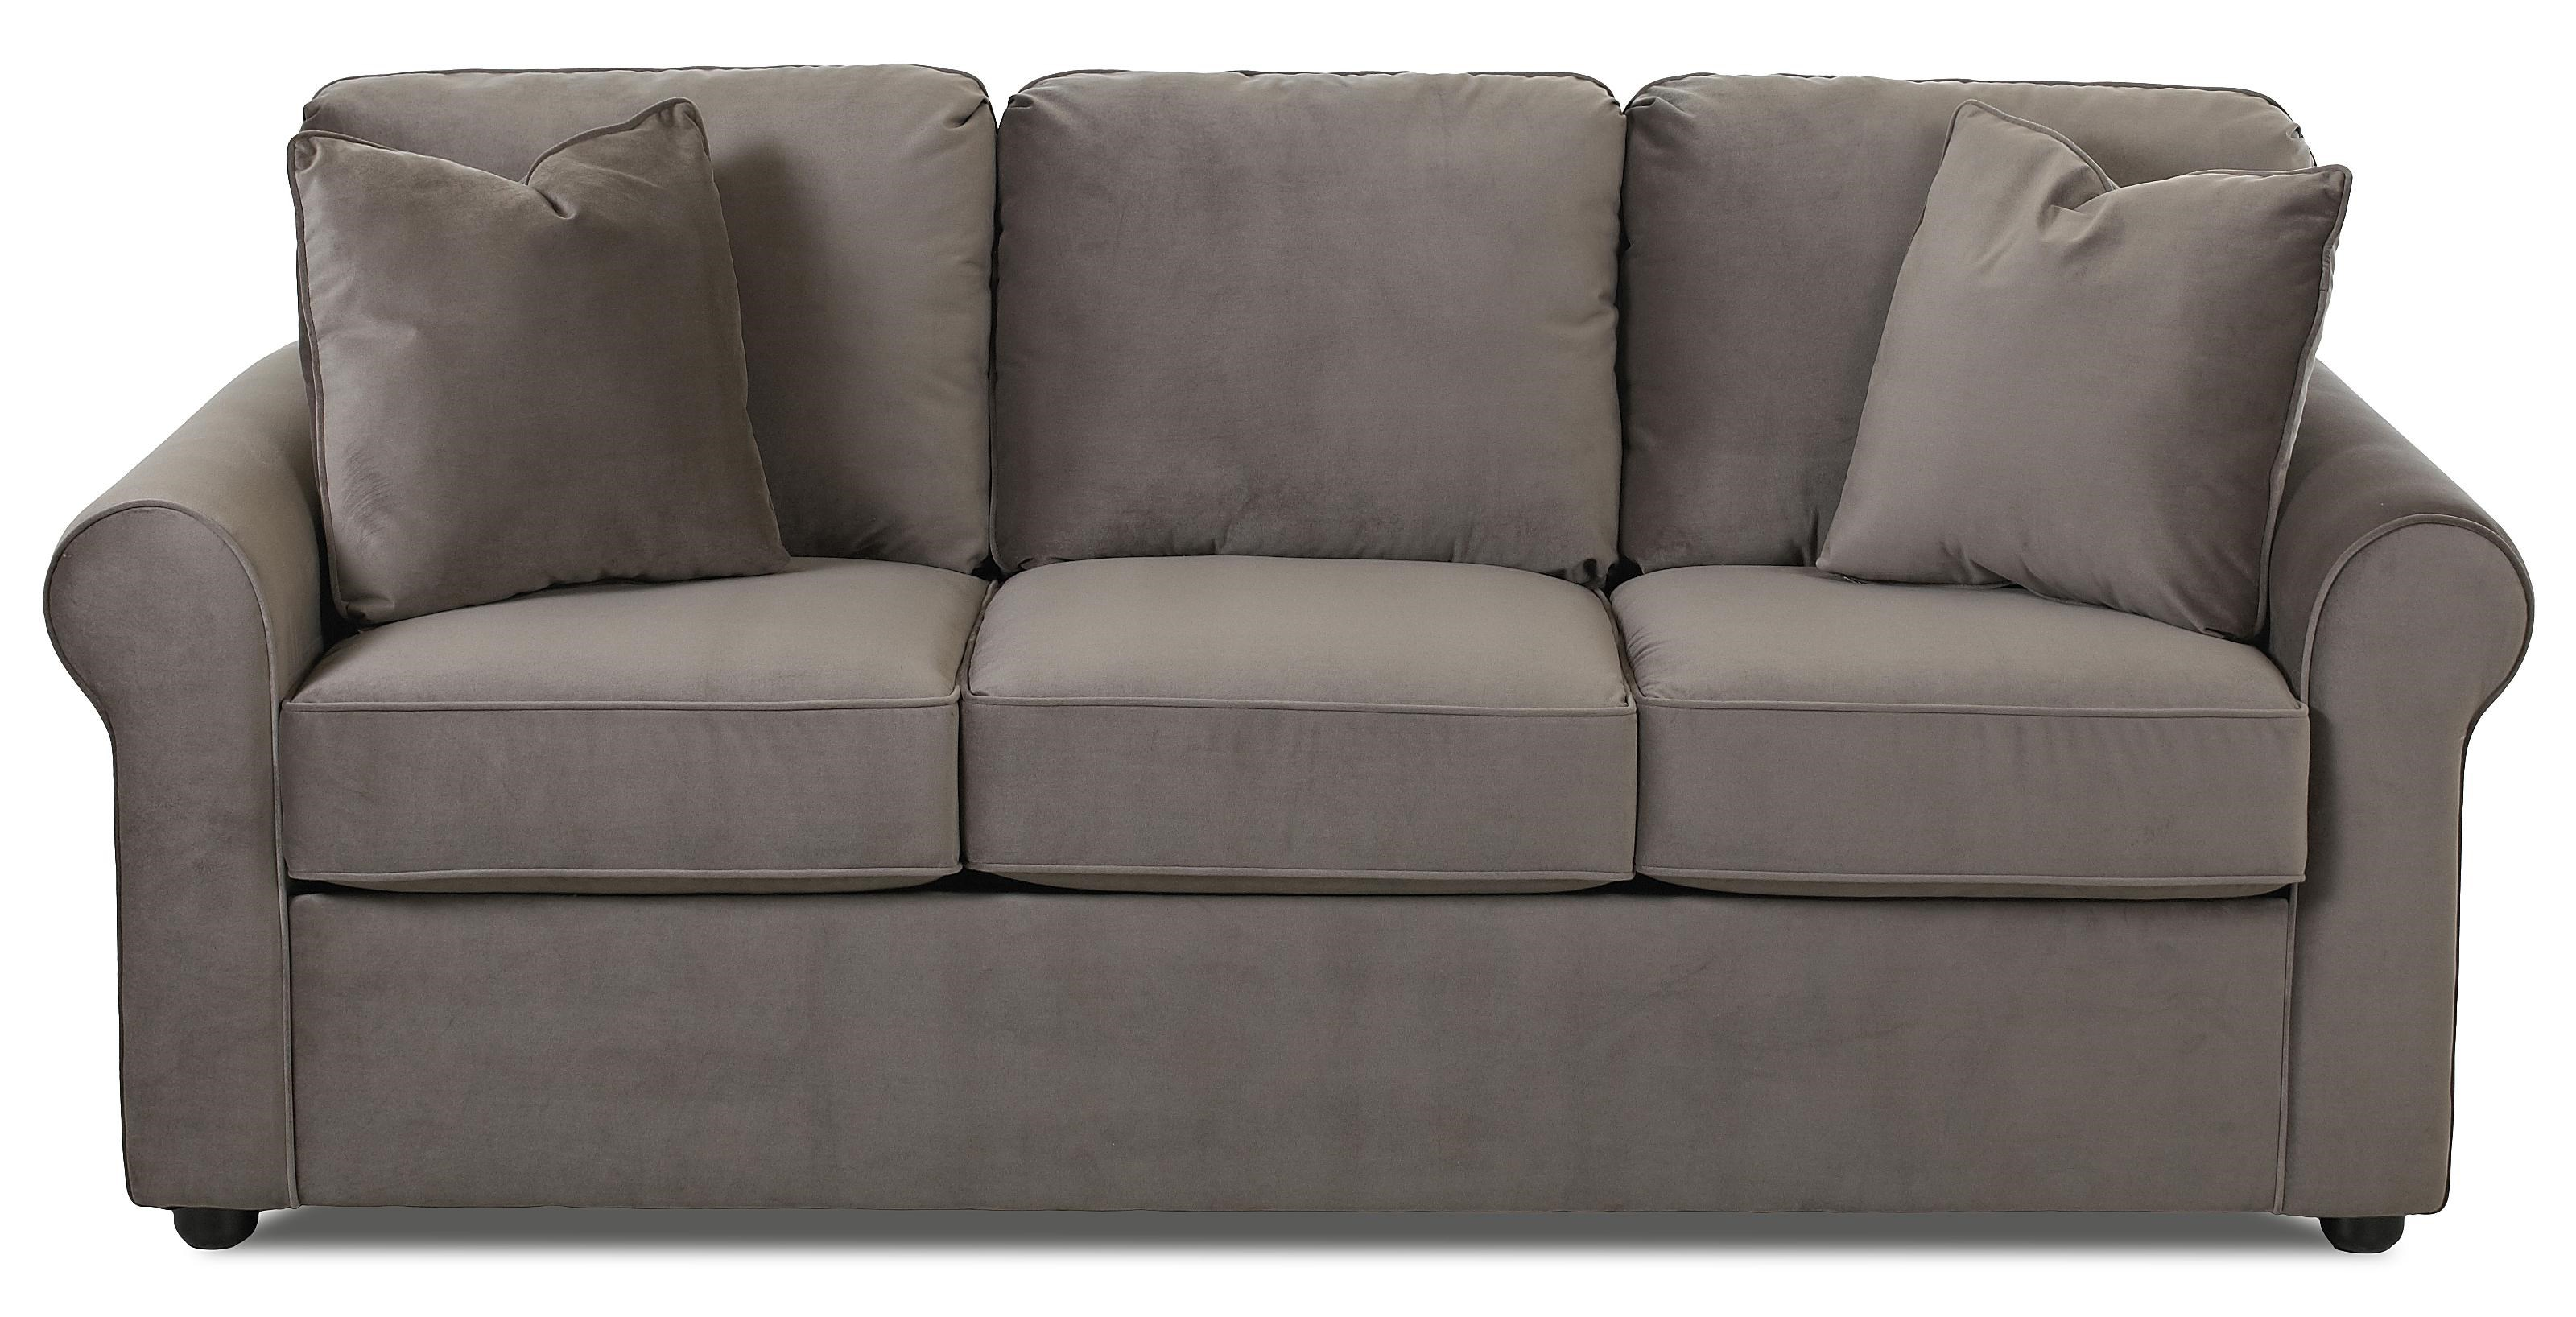 Klaussner Silva Casual Sofa with Rolled Arms - Furniture Barn - Sofa Pennsville, Bear, Newark ...